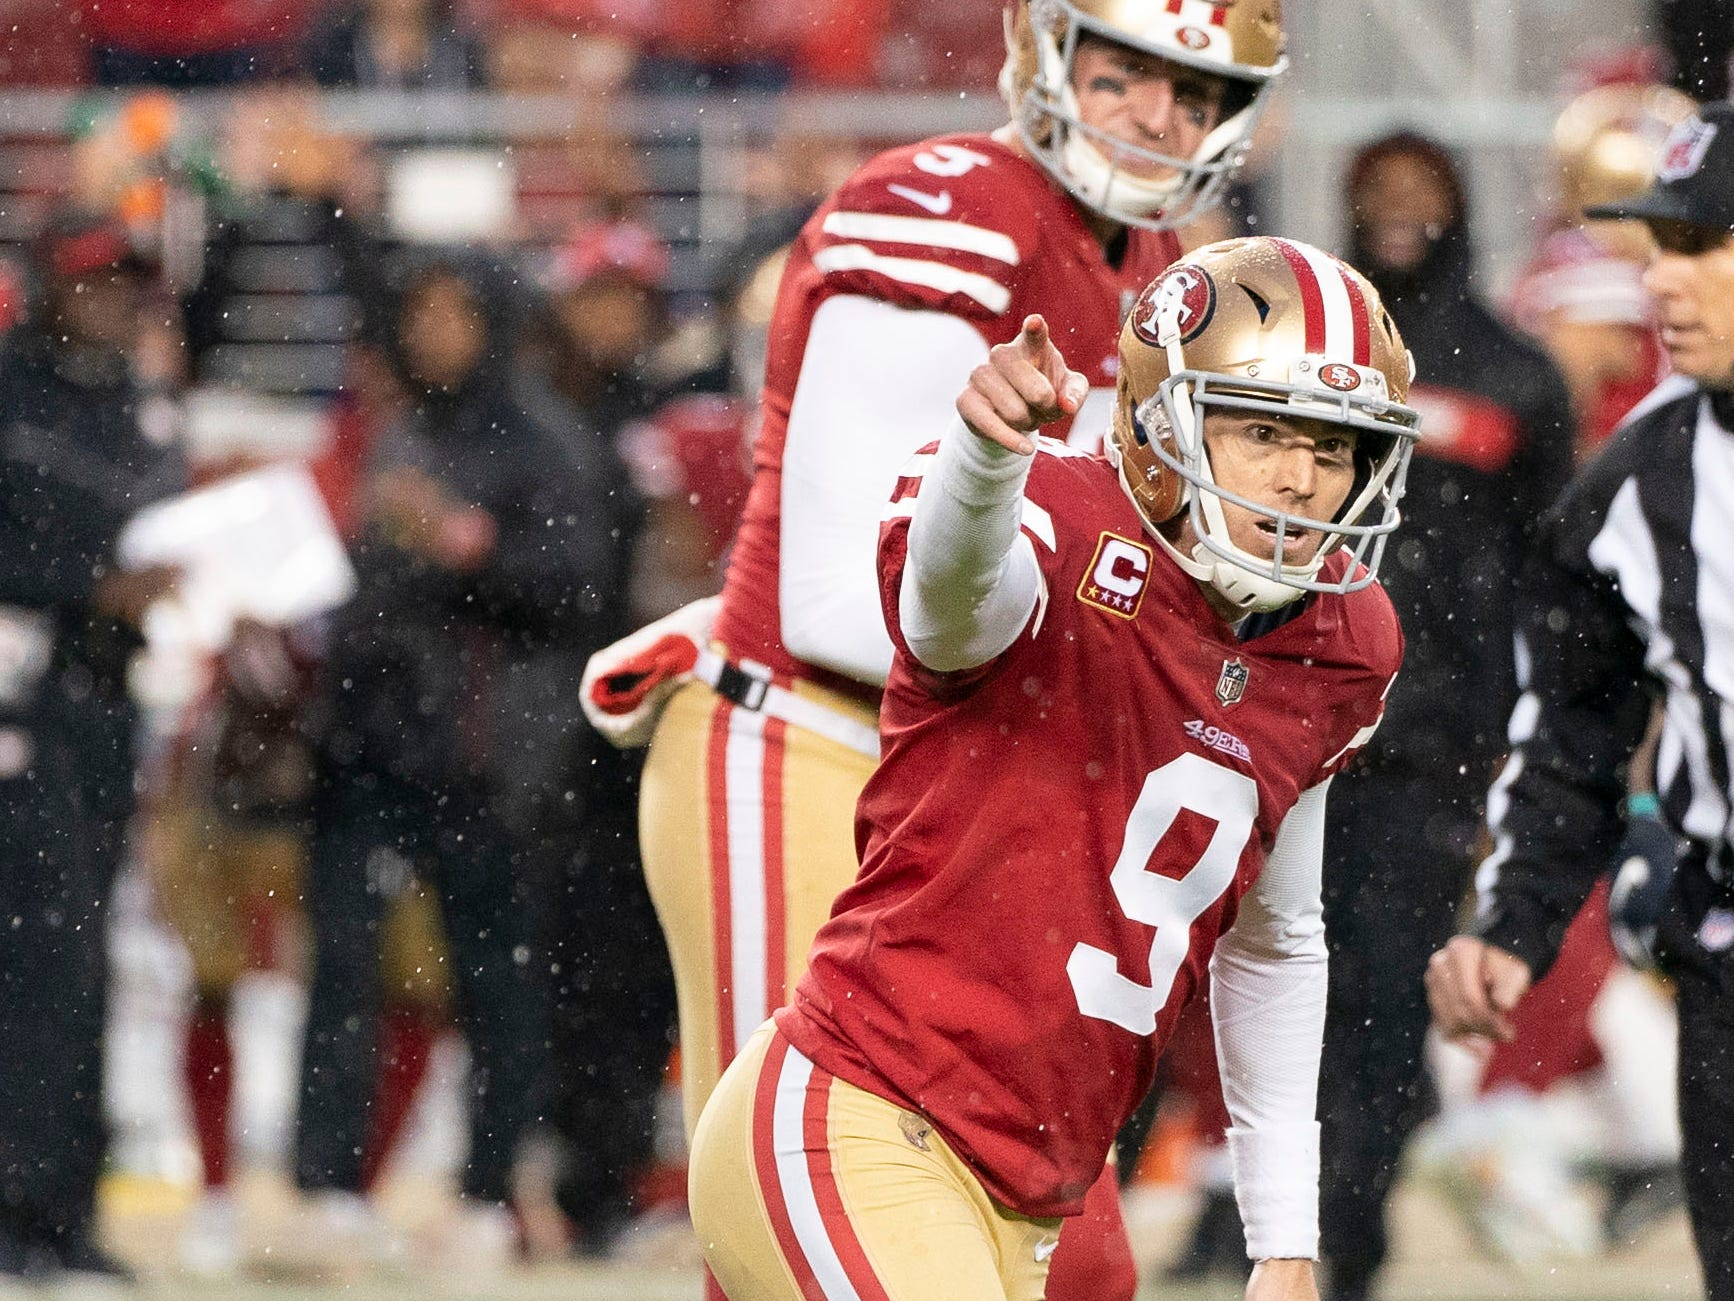 San Francisco 49ers kicker Robbie Gould celebrates after kicking the game-winning field goal during overtime against the Seattle Seahawks at Levi's Stadium.